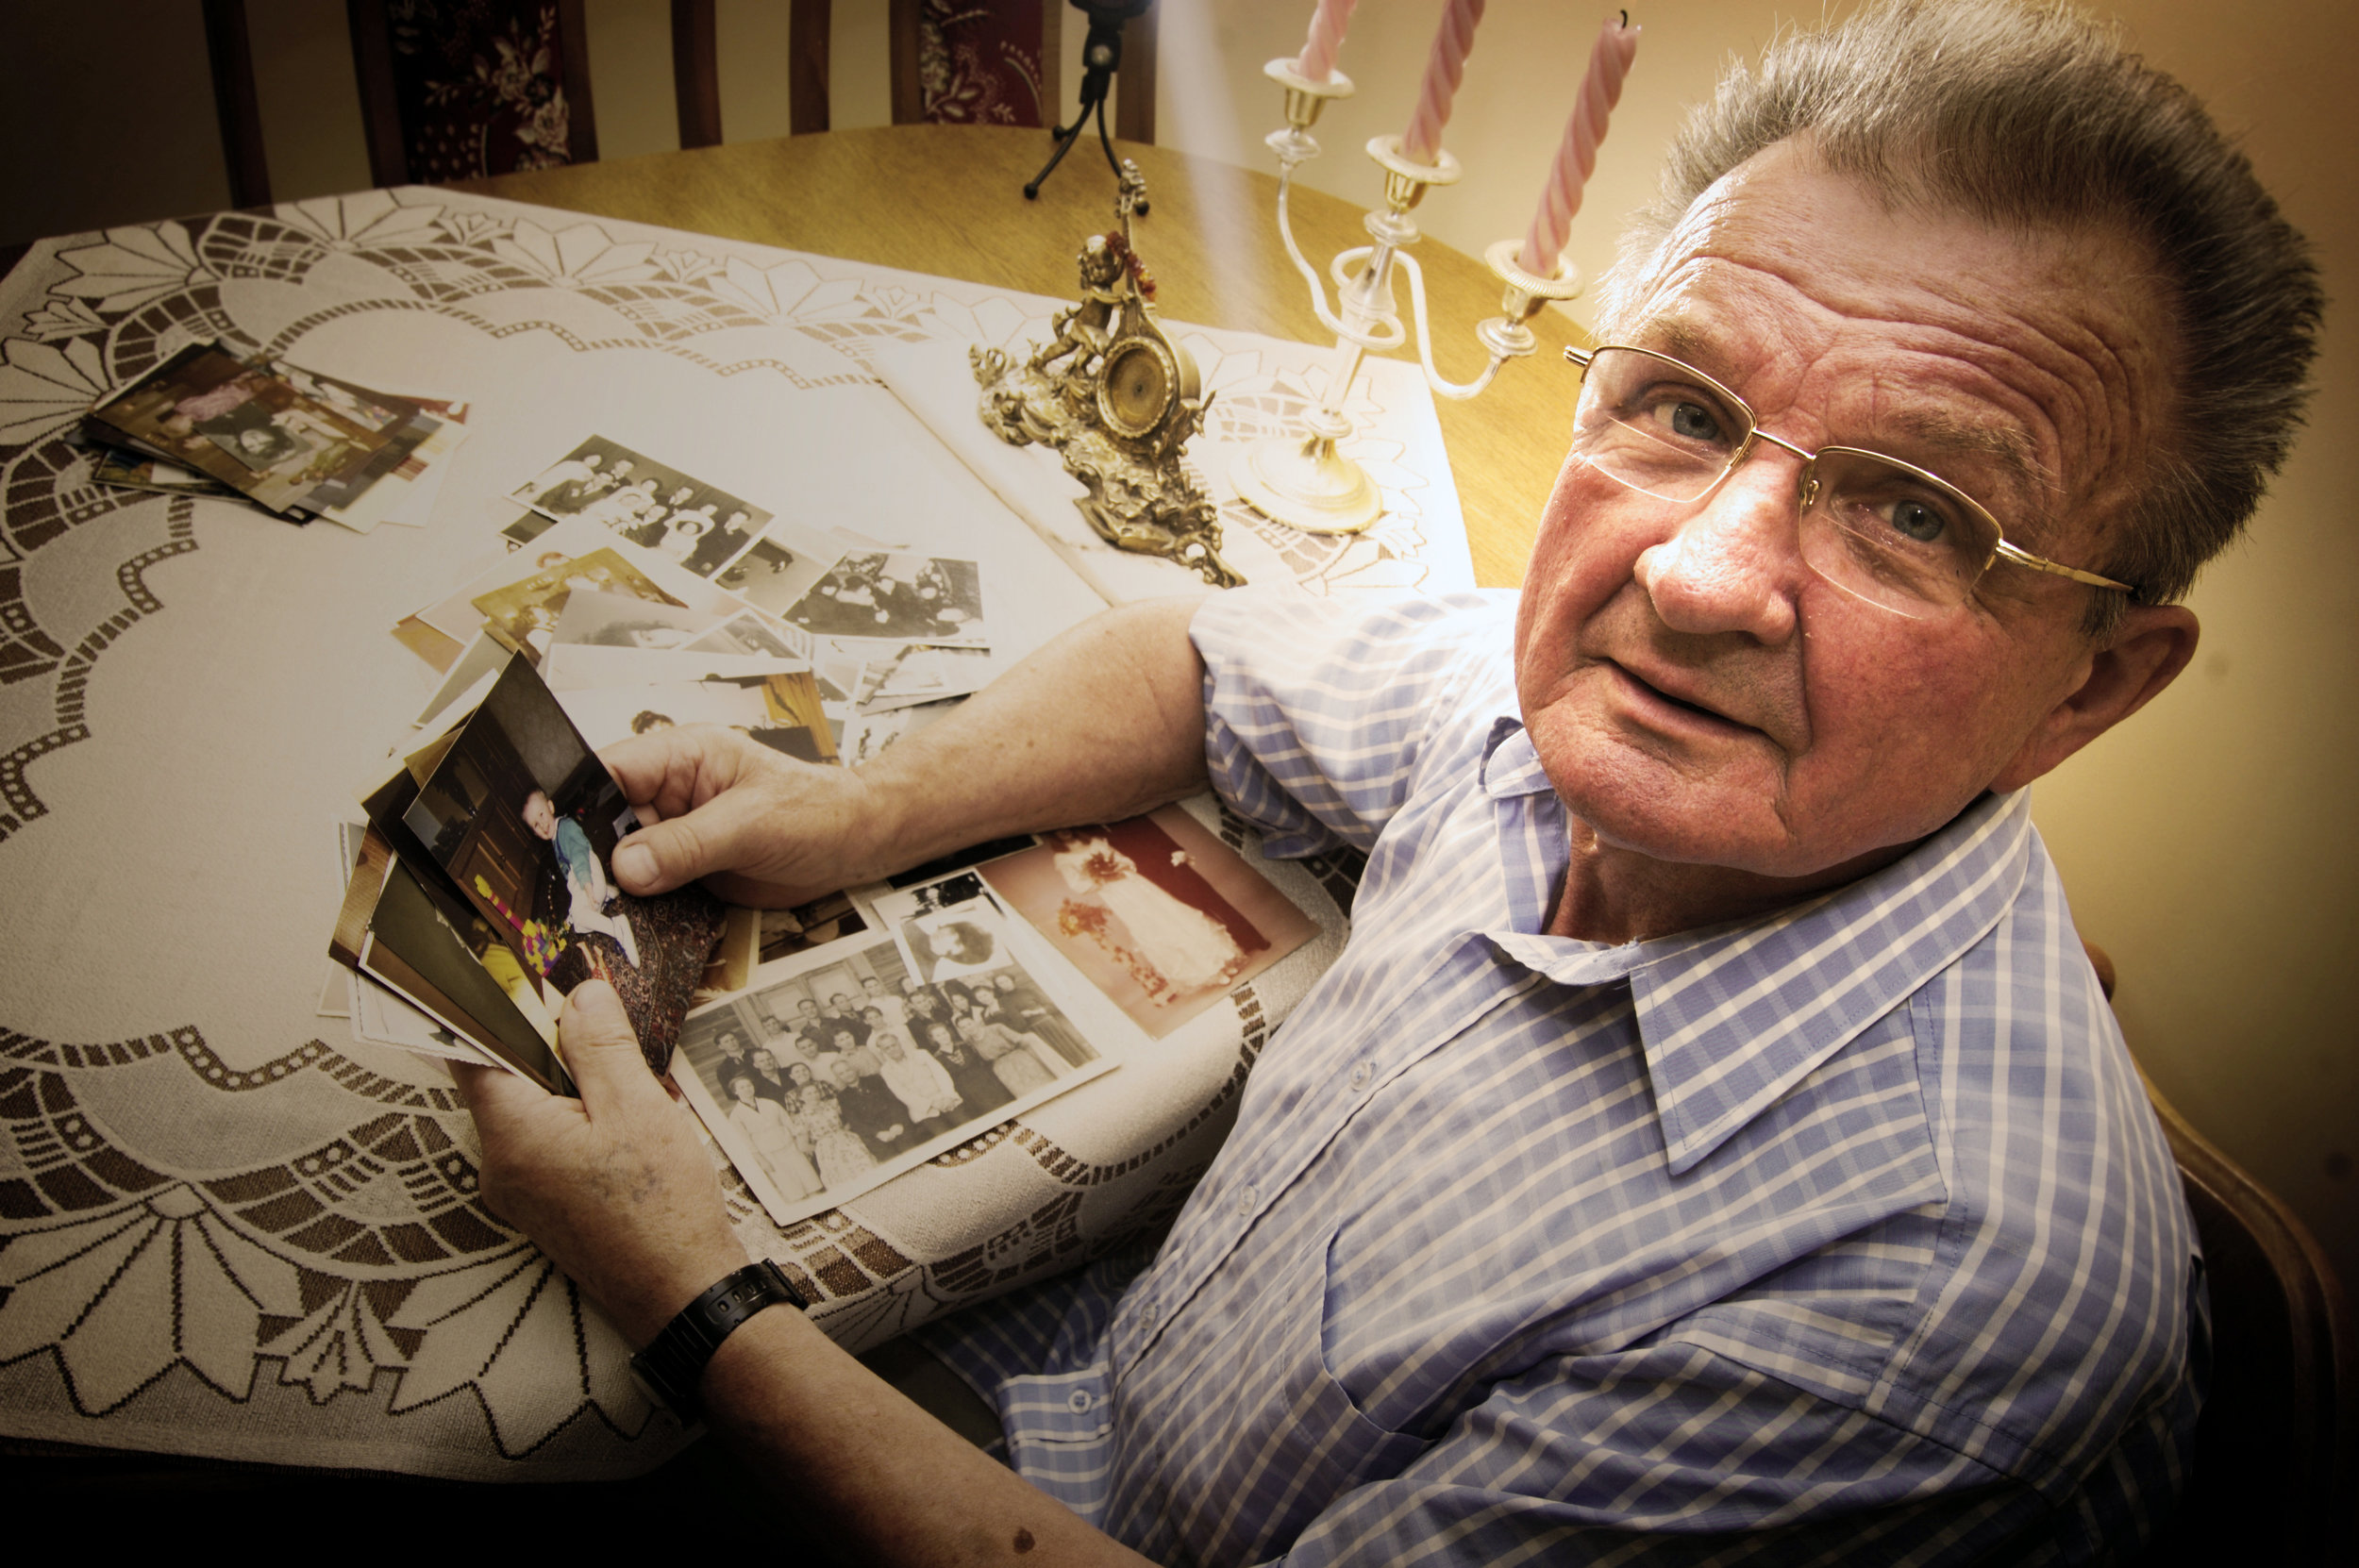 For seniors, life review and reminiscence are a key component of aging and ending life well.